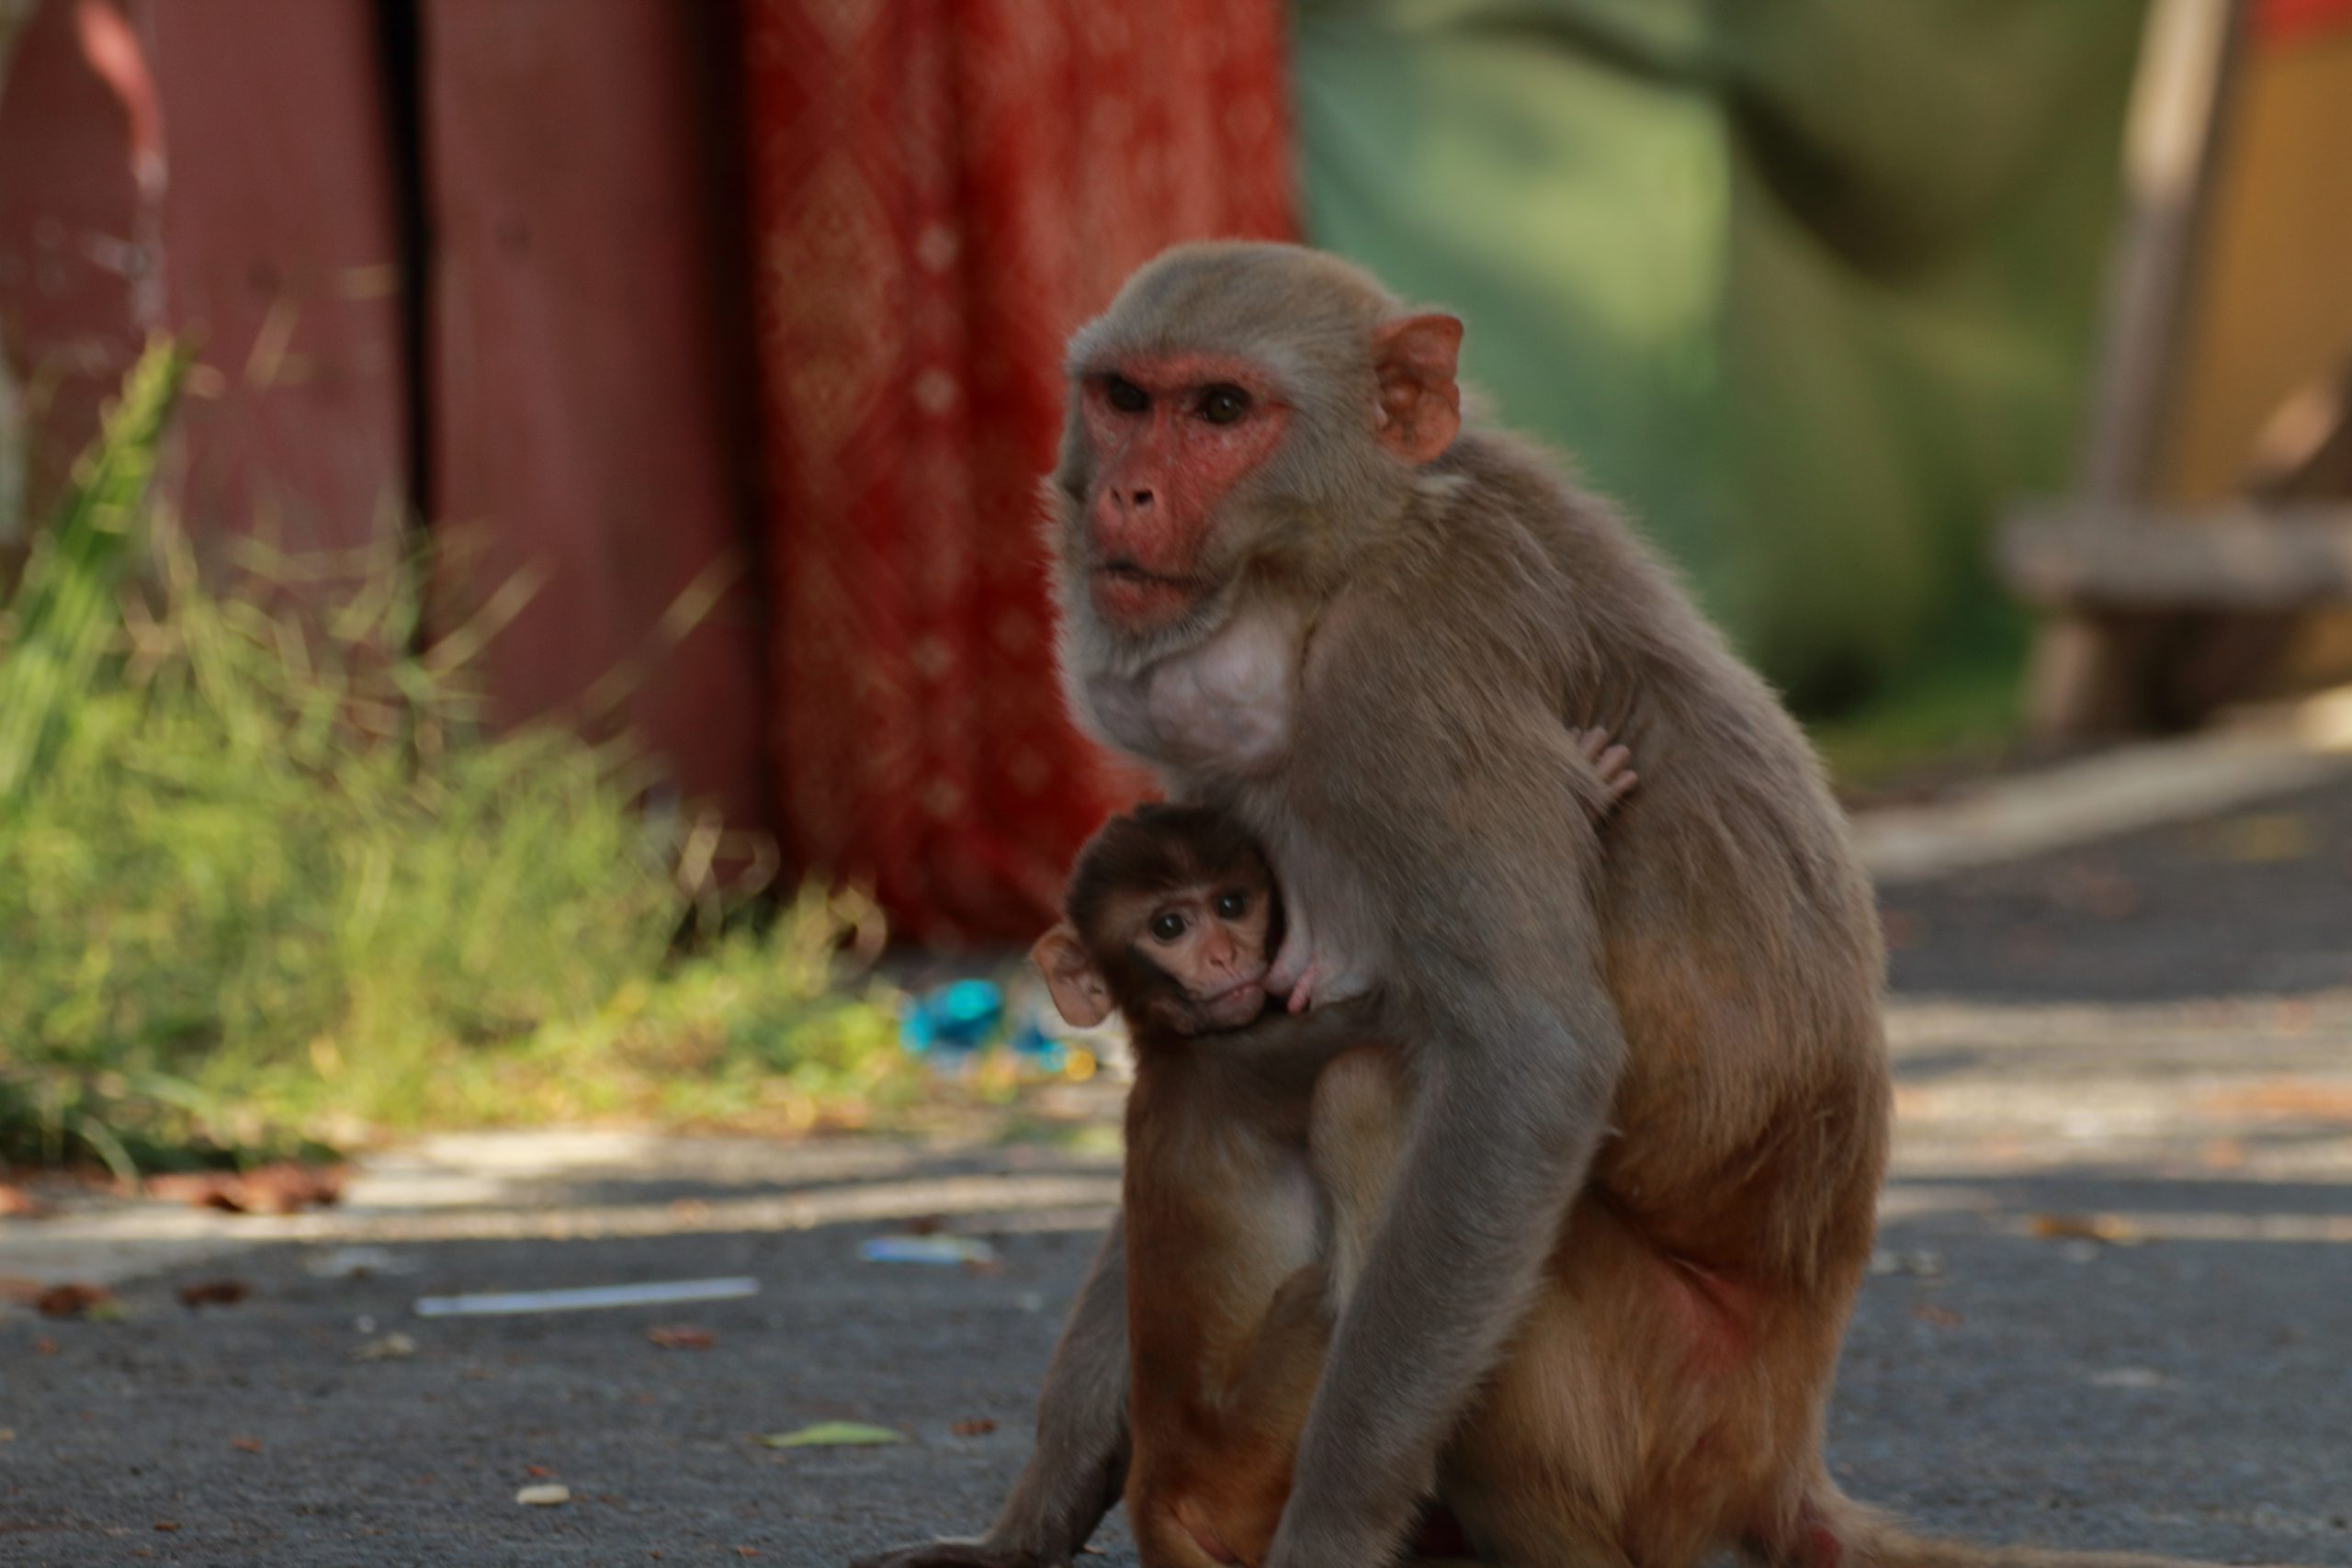 A female monkey with her baby